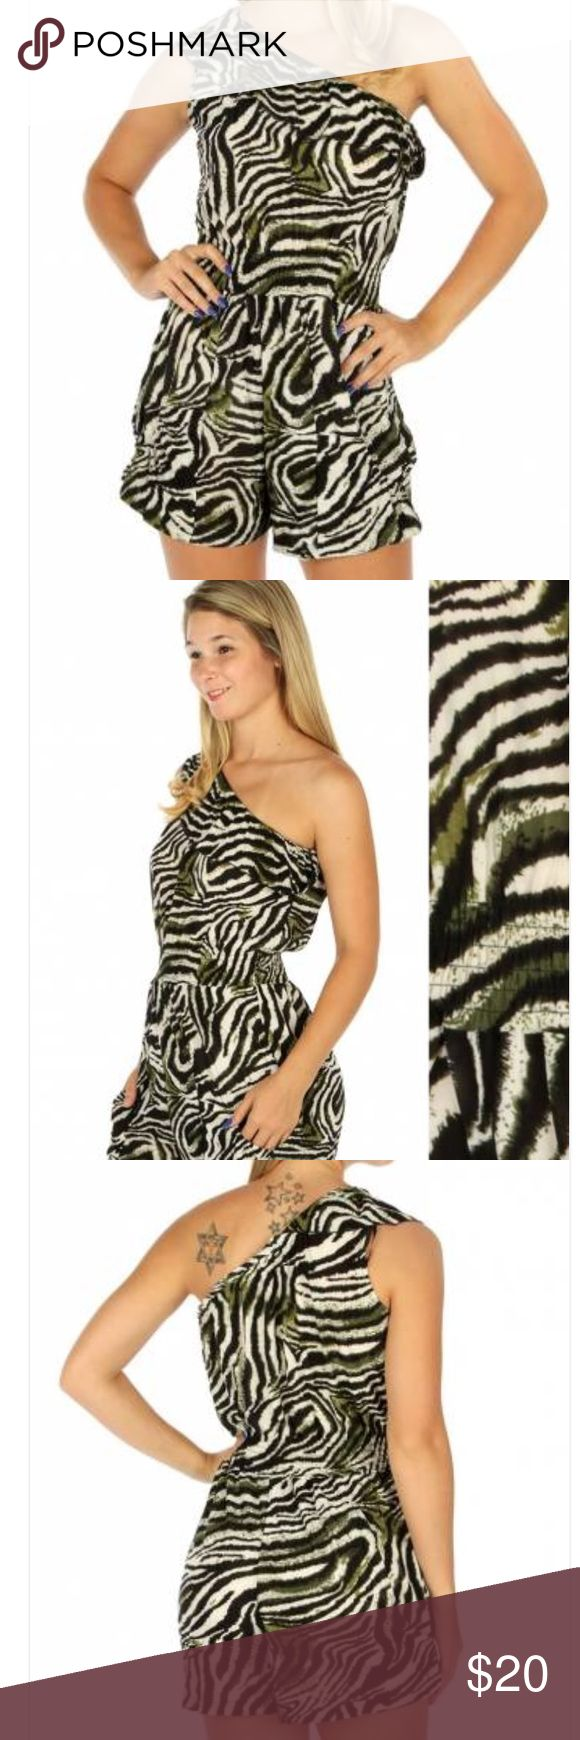 One shoulder tiger green romper This romper features a ruffled one shoulder style and a tiger print. 100% Polyester Weight 6.4 oz Other